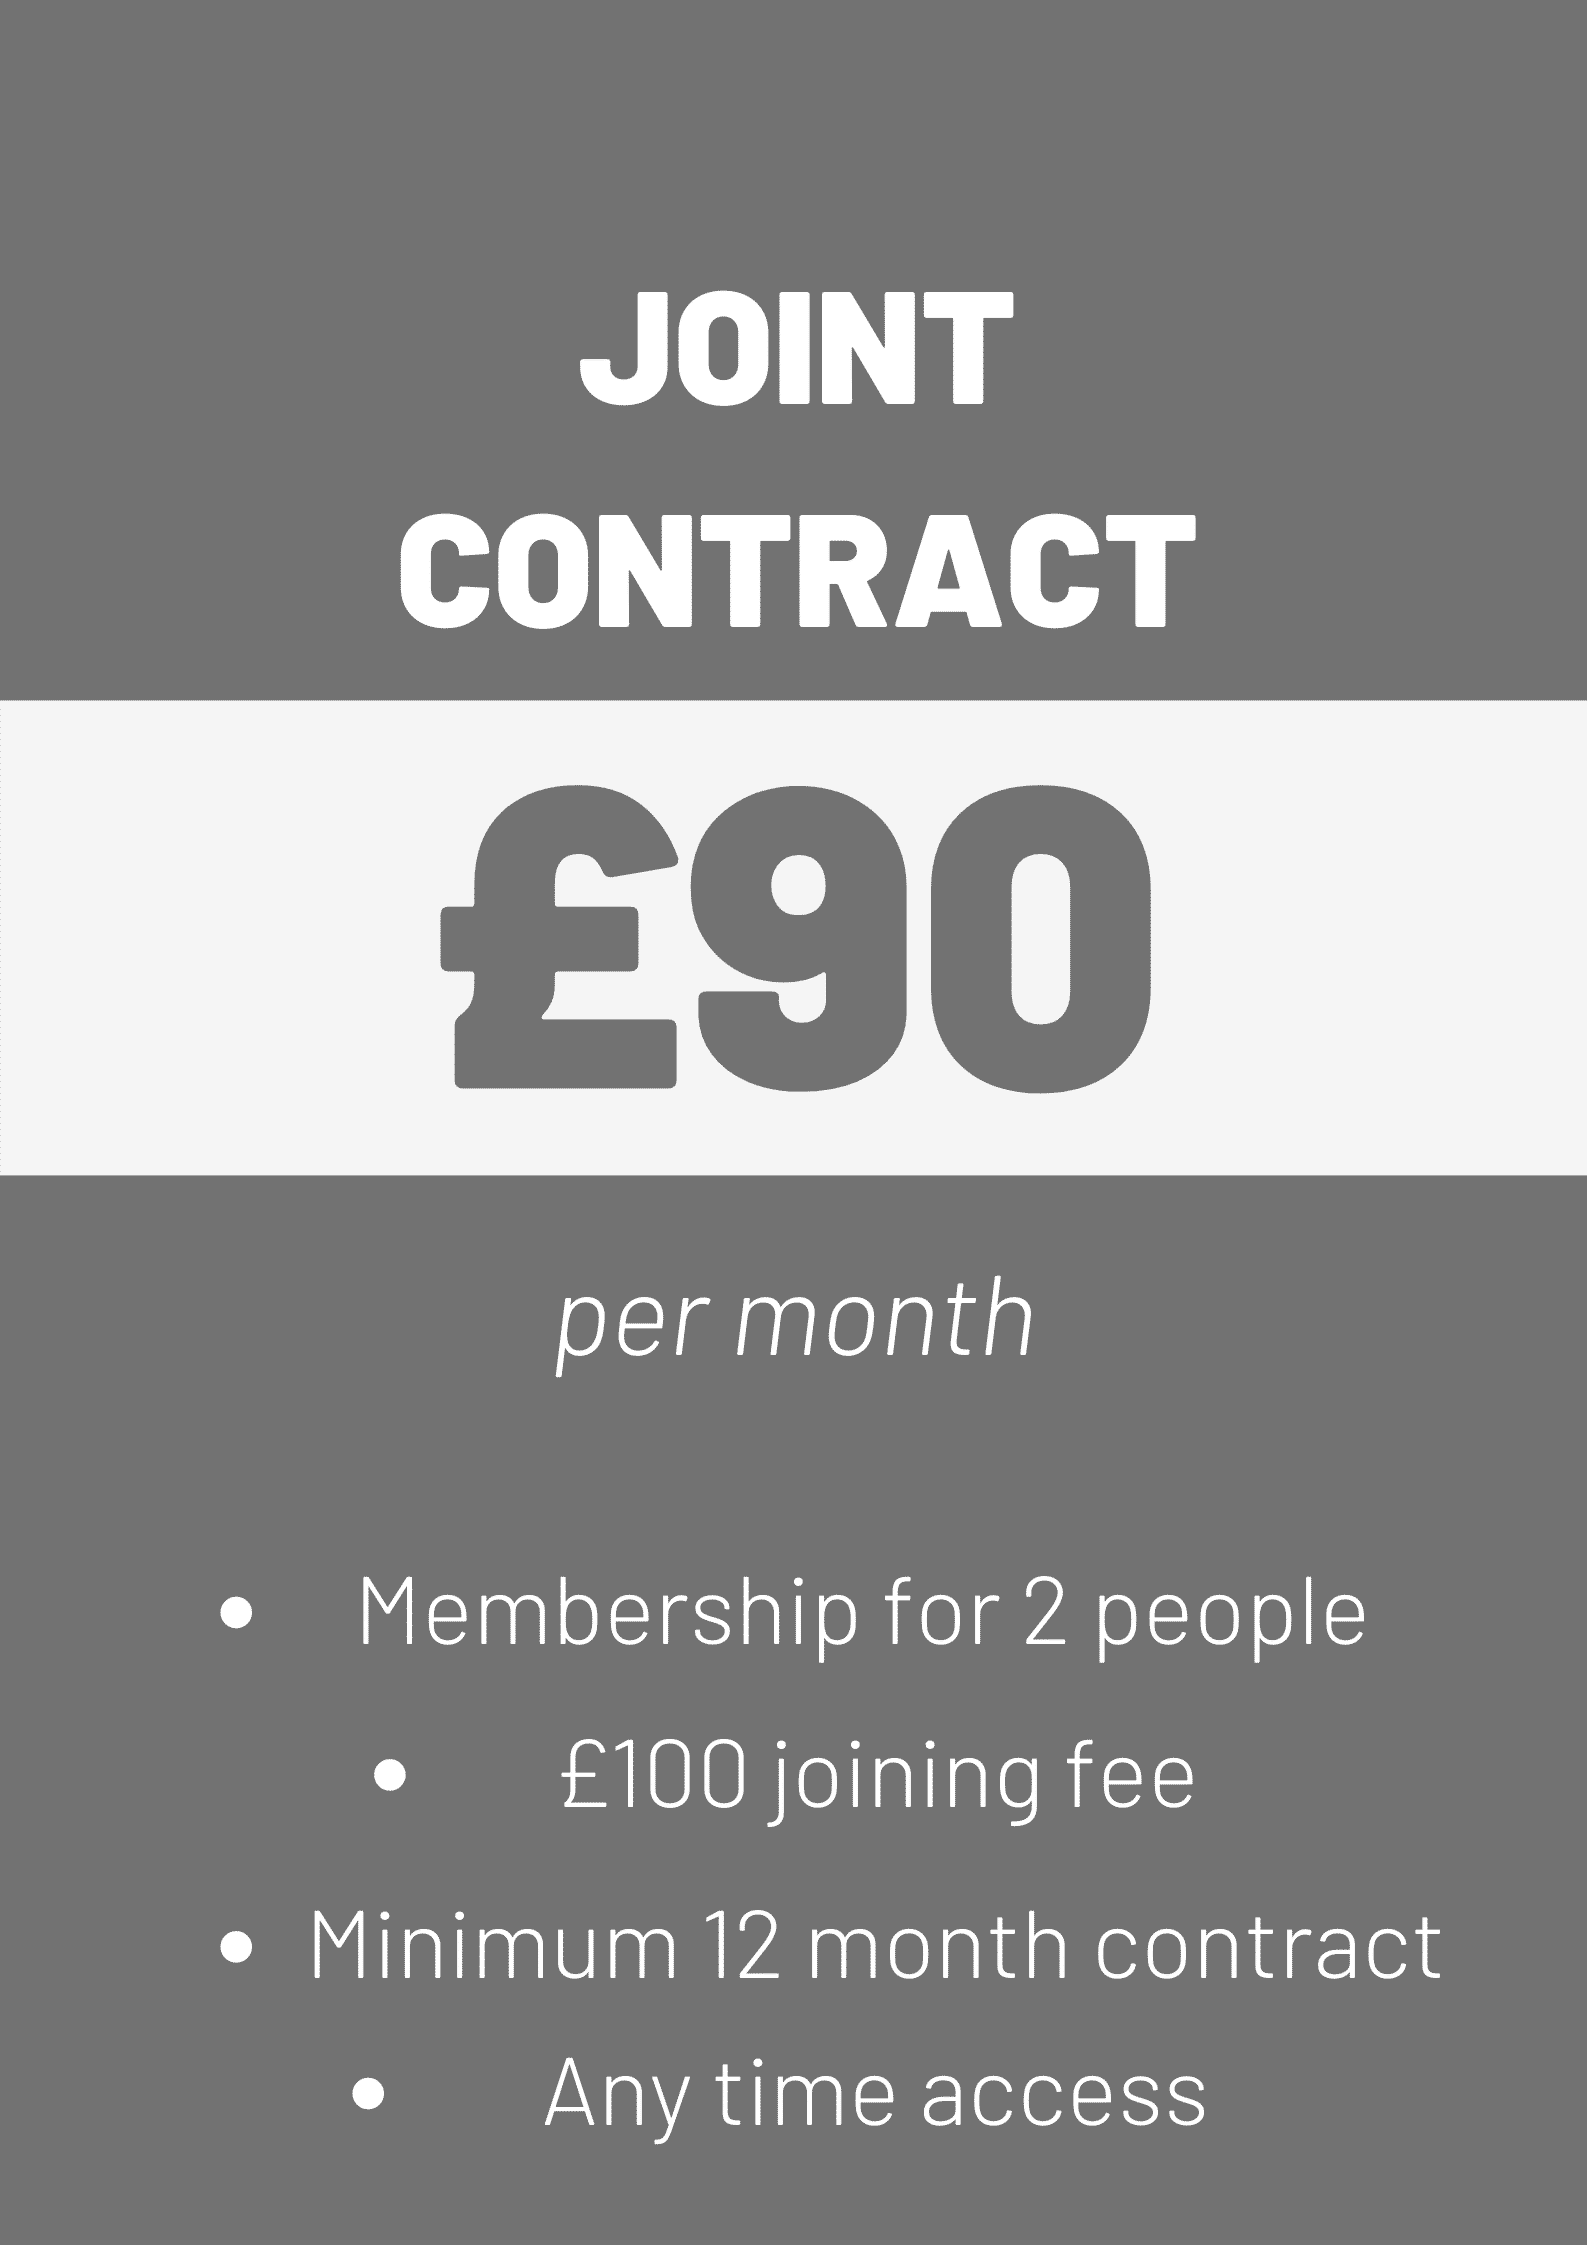 Joint Contract